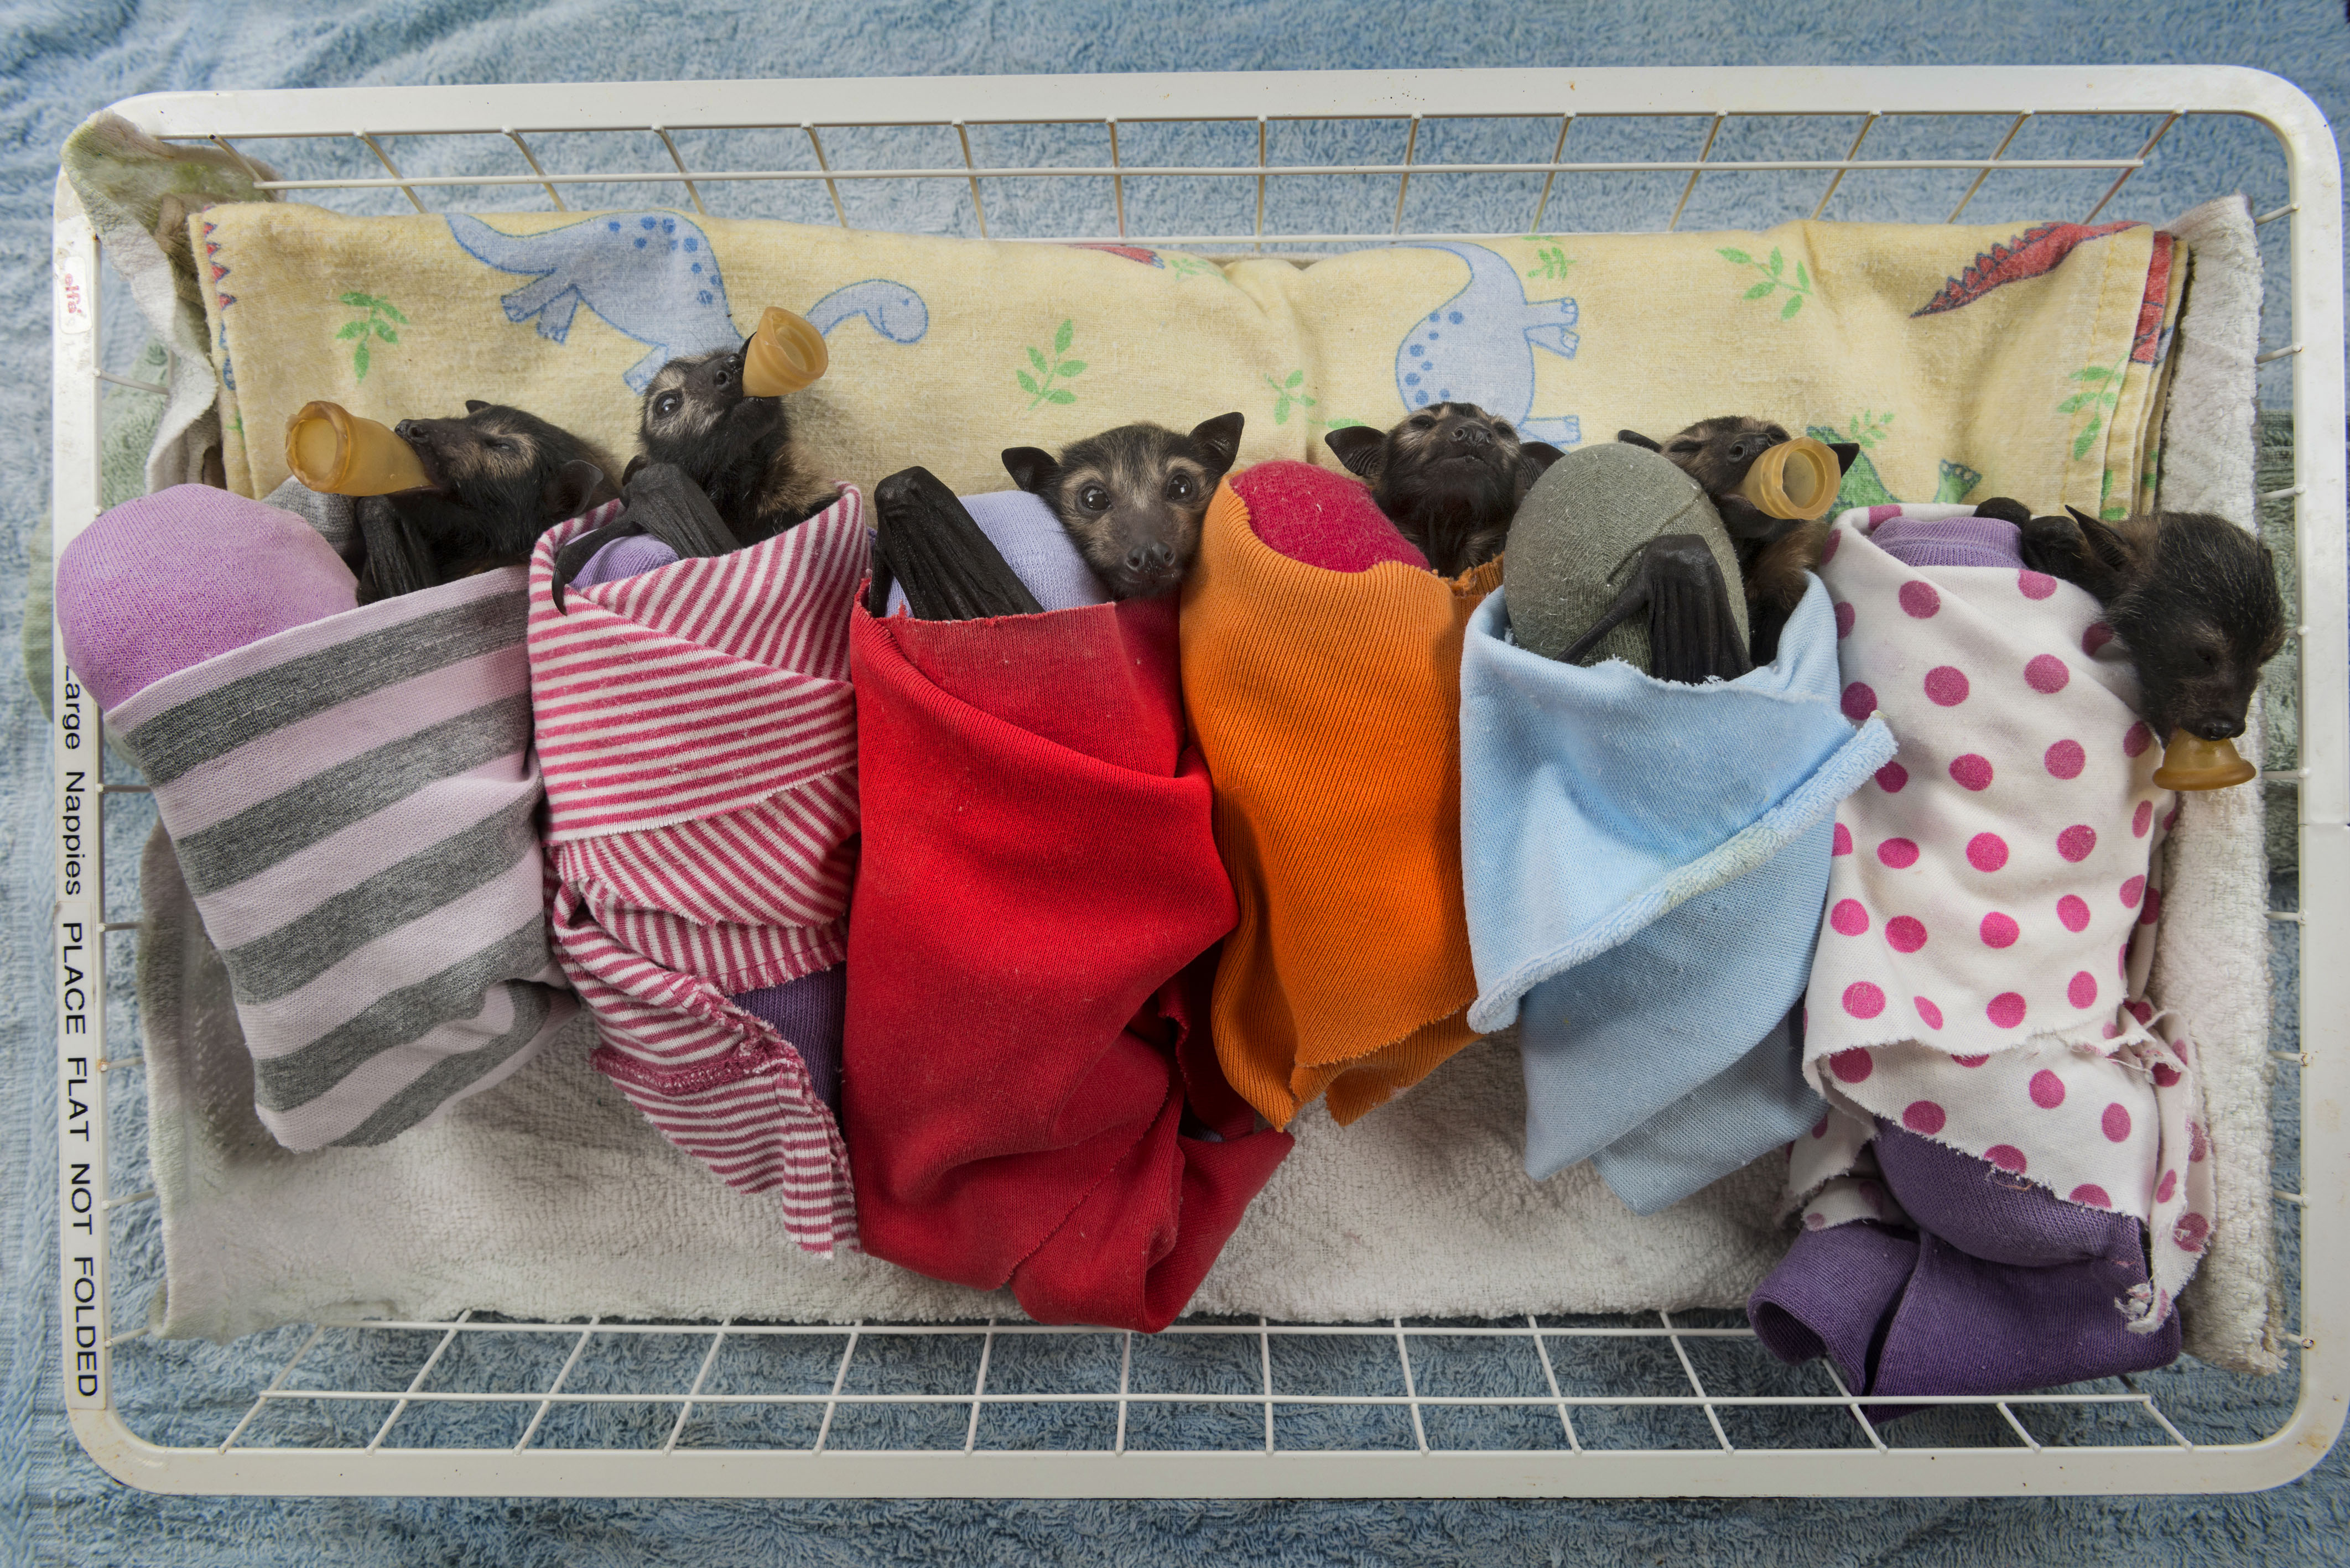 Adorable Pictures Of Abandoned Bats Wrapped In Blankets